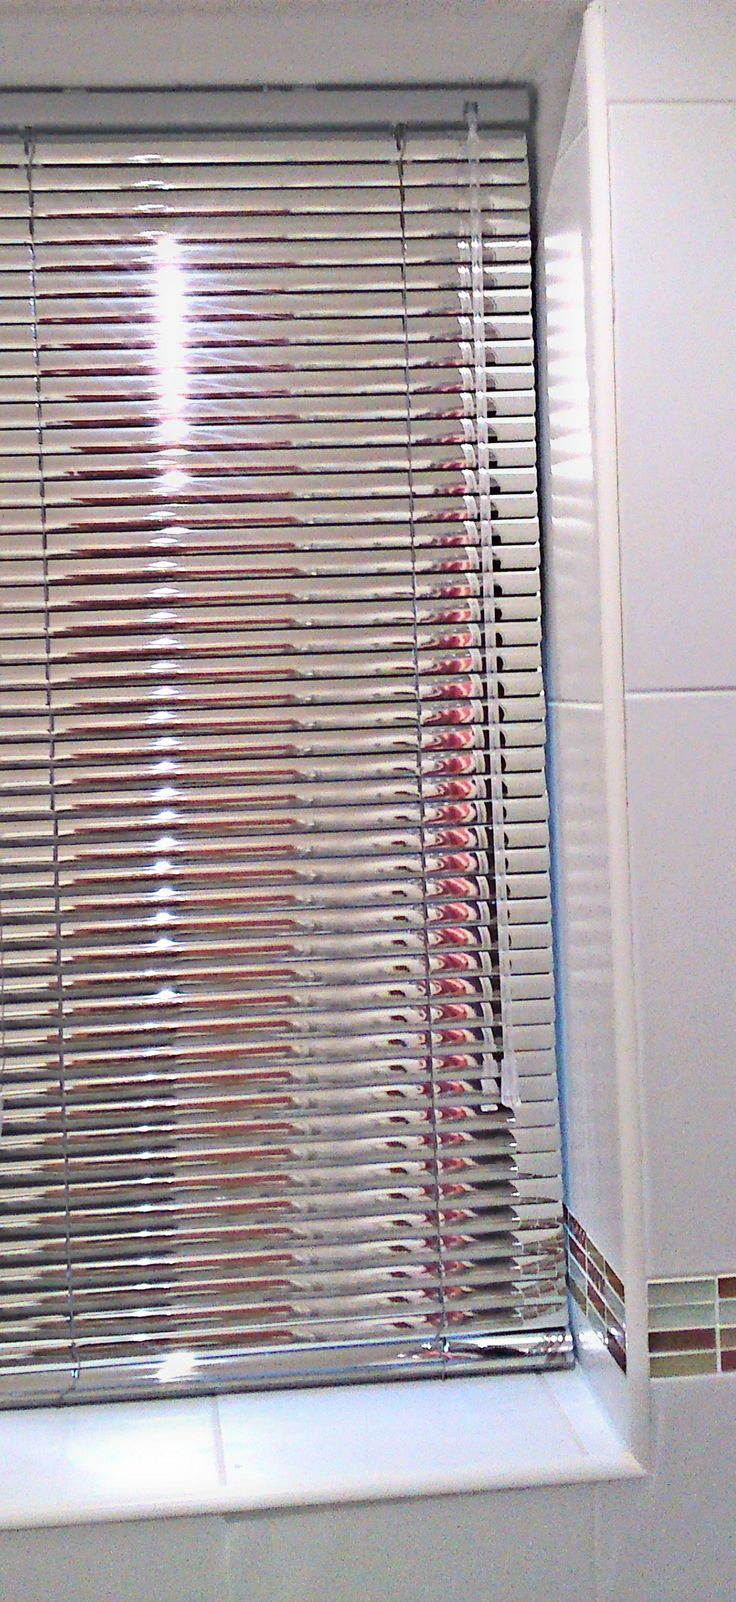 Cheap bathroom blinds uk - 25 Mm Venetian Blind In A Mirrored Finish In A Modern Bathroom Stunning From